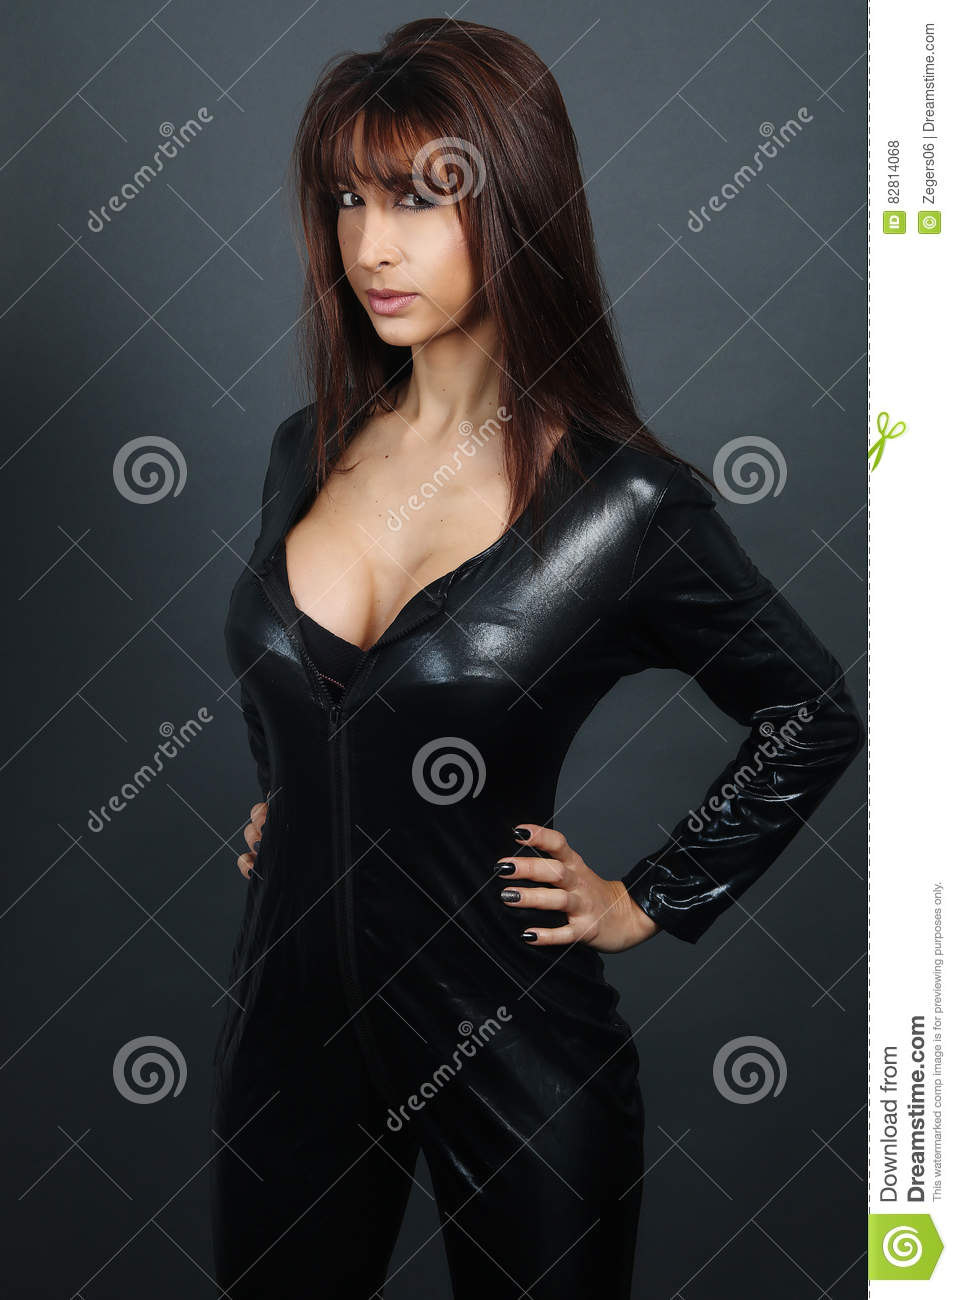 Busty Girl In Leather